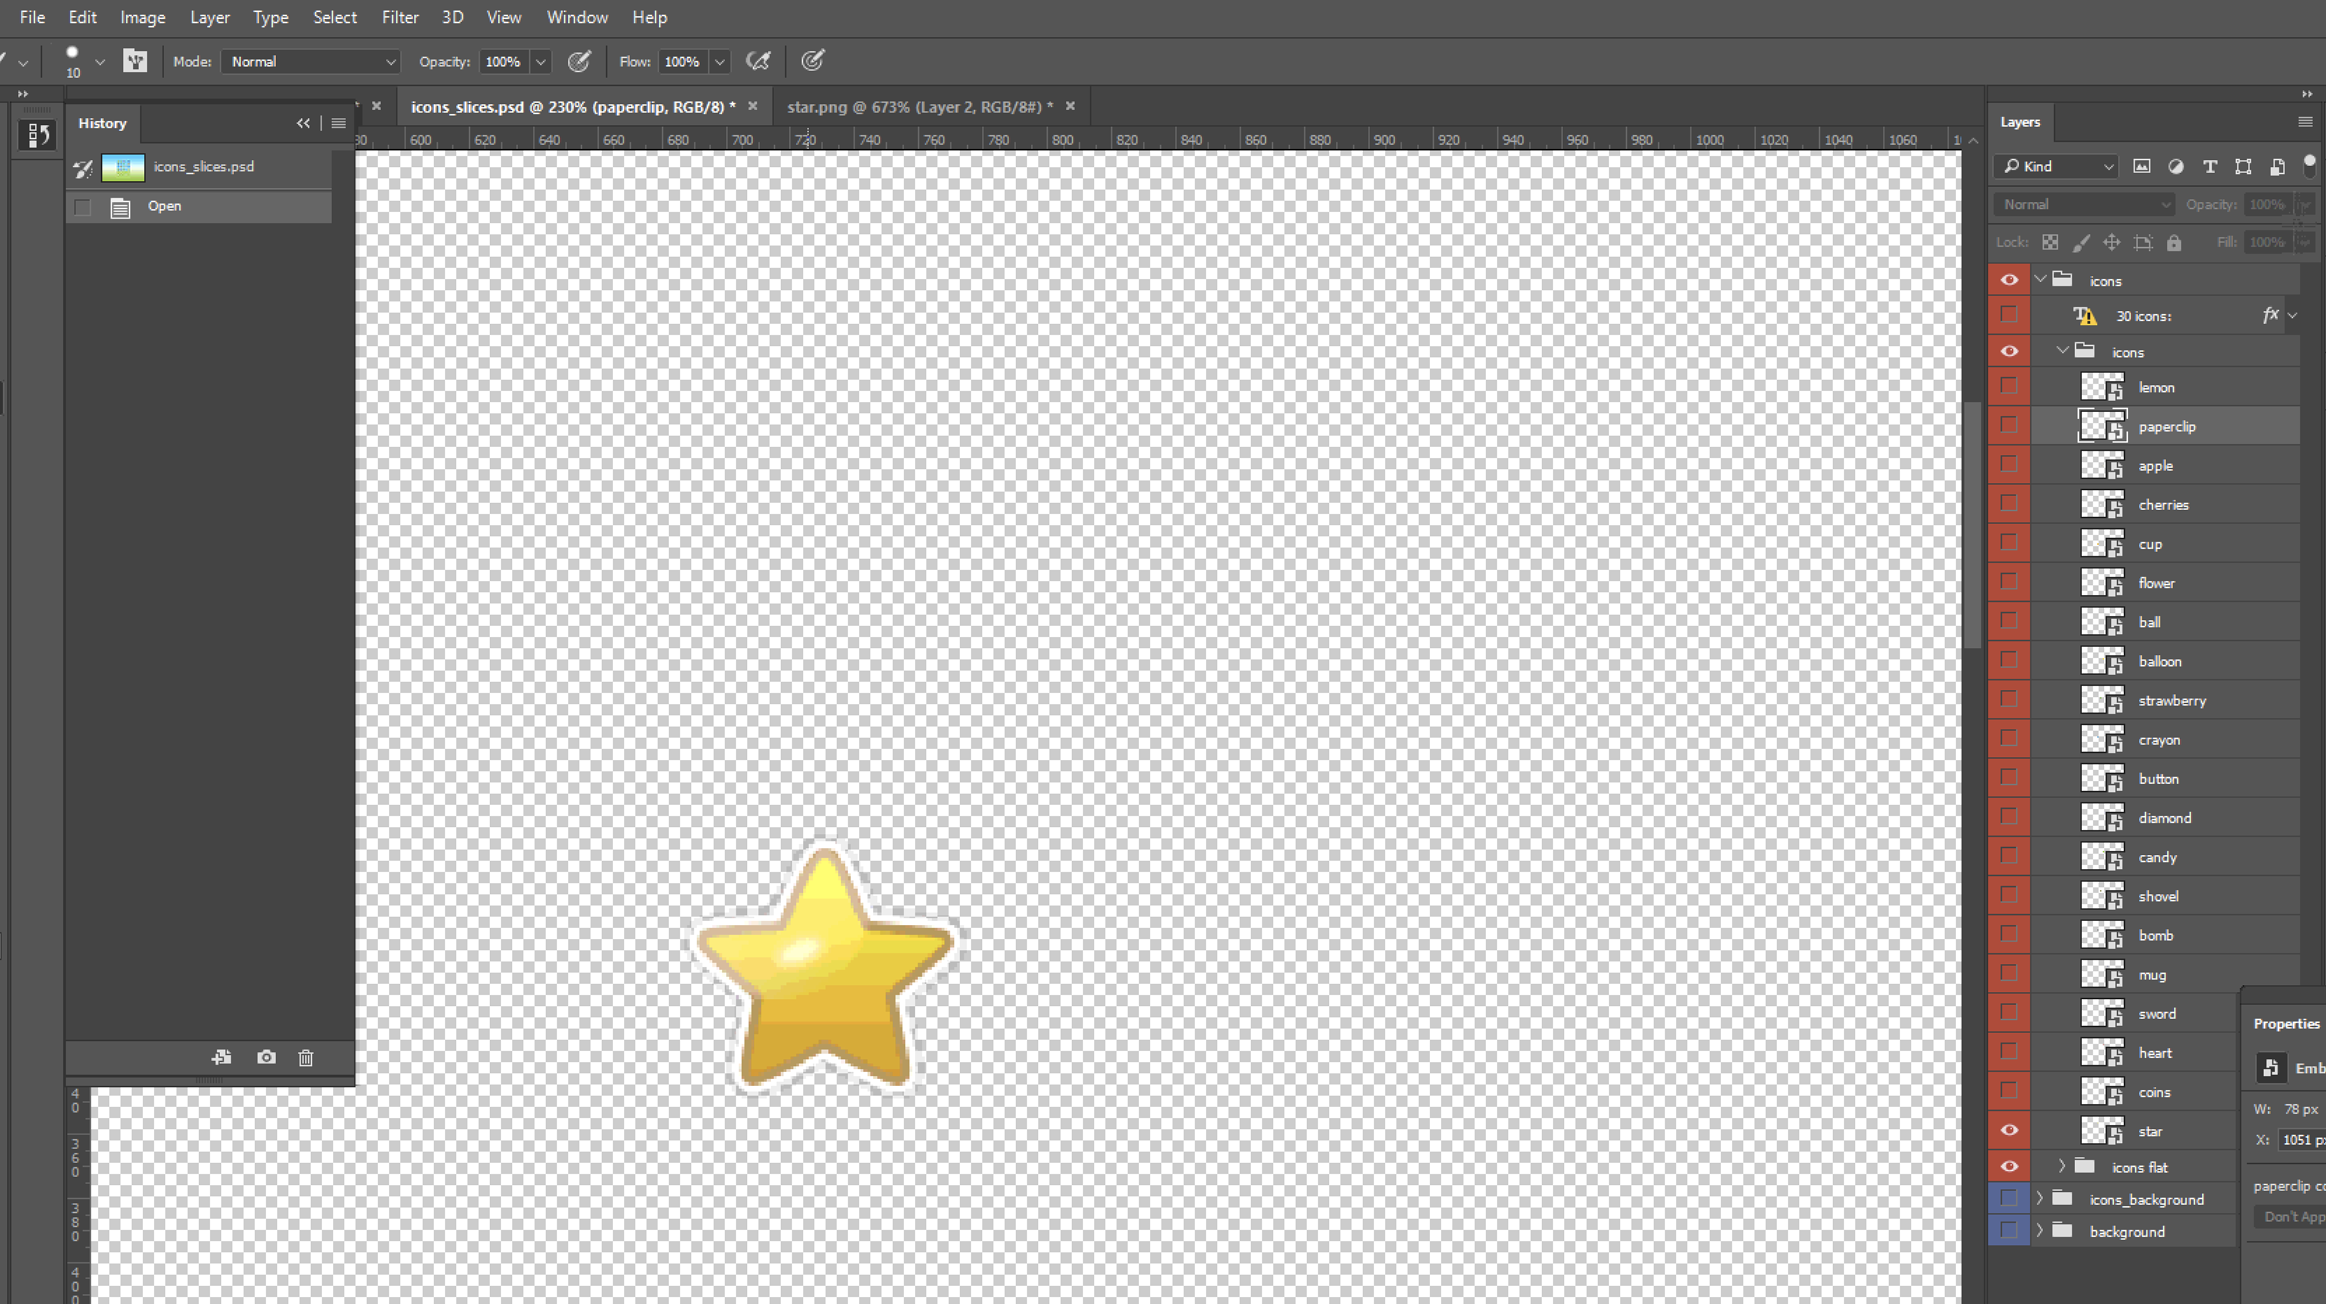 turned all layers off except for the layer with the star icon